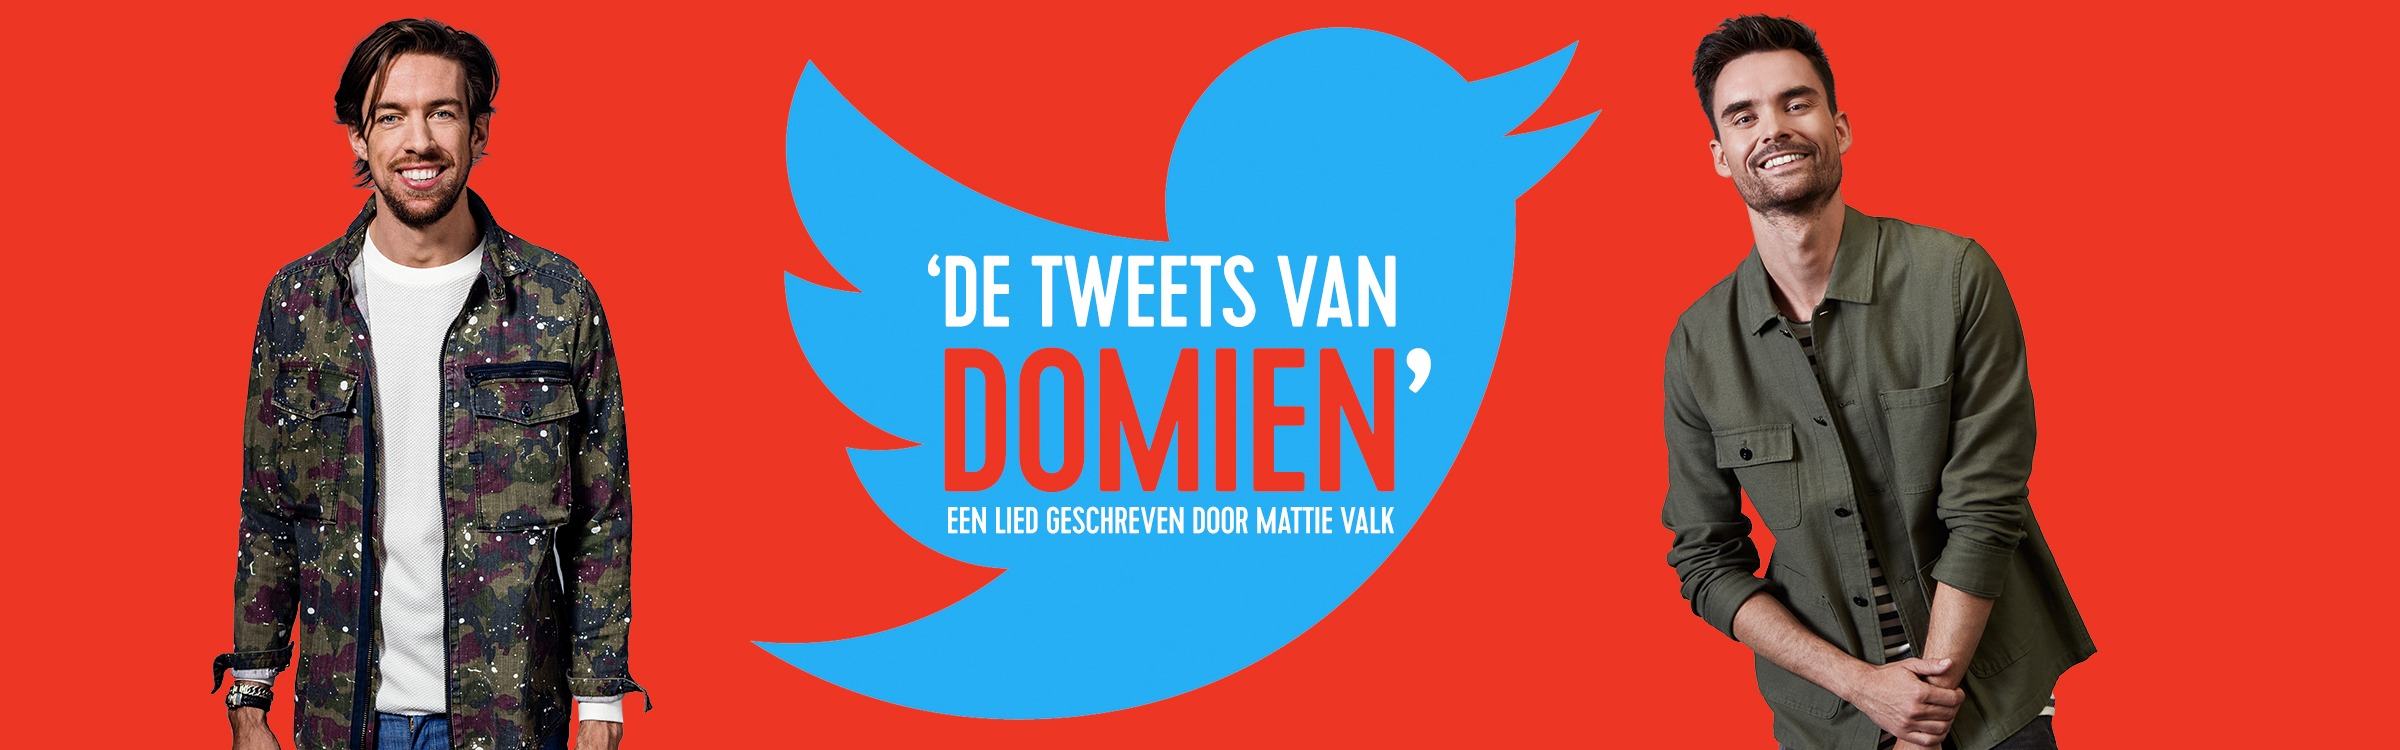 Tweets van domien header